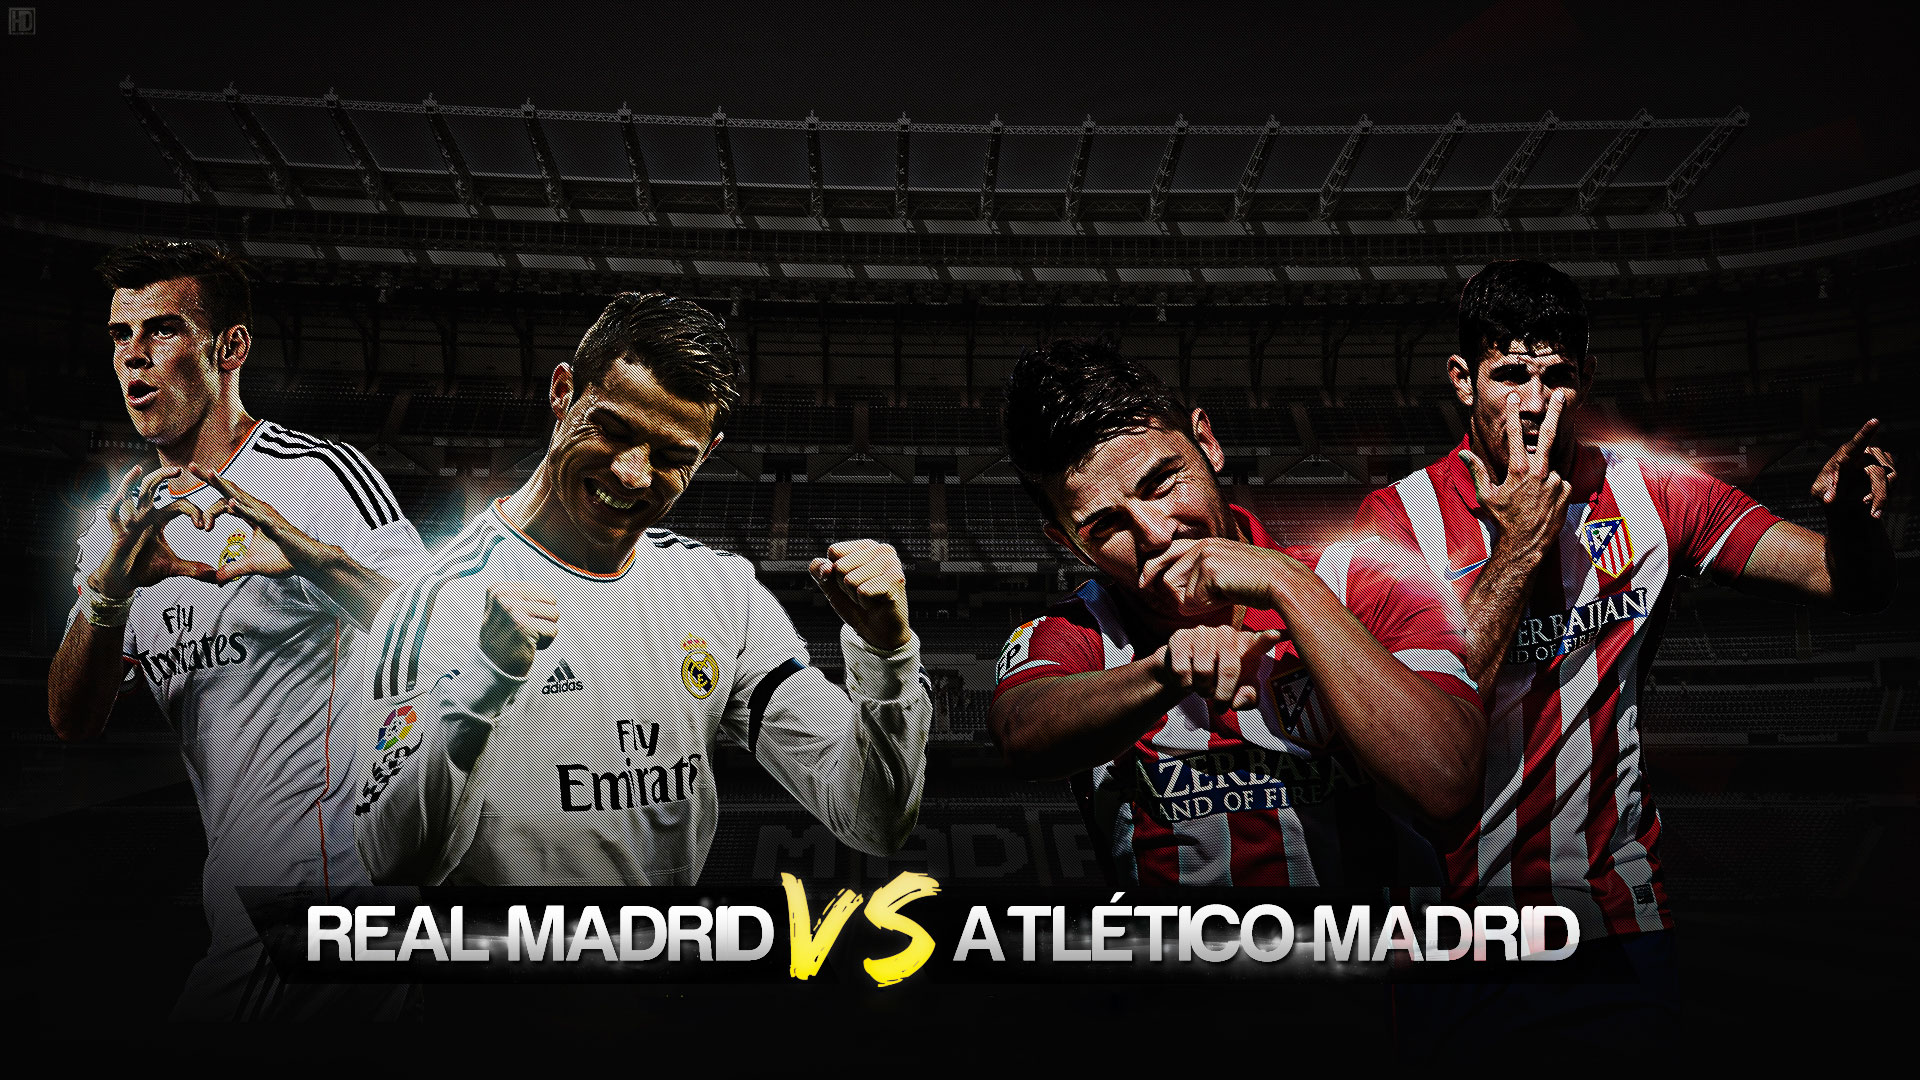 real madrid - atletico madrid